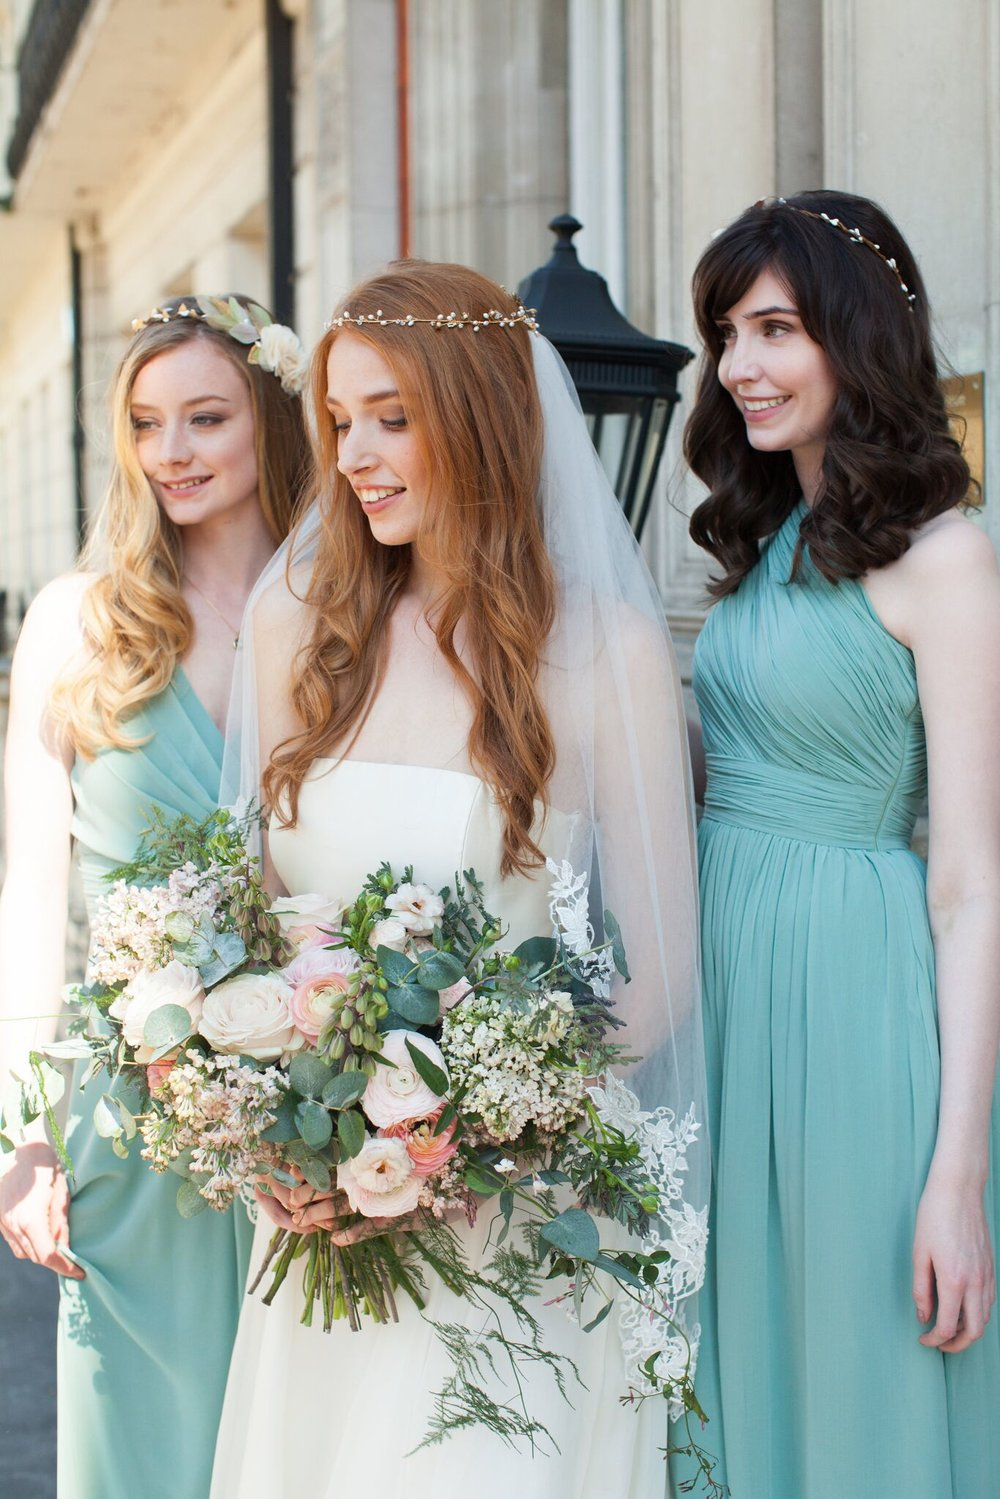 Professional Wedding Make-up artist and hair stylist working across East London